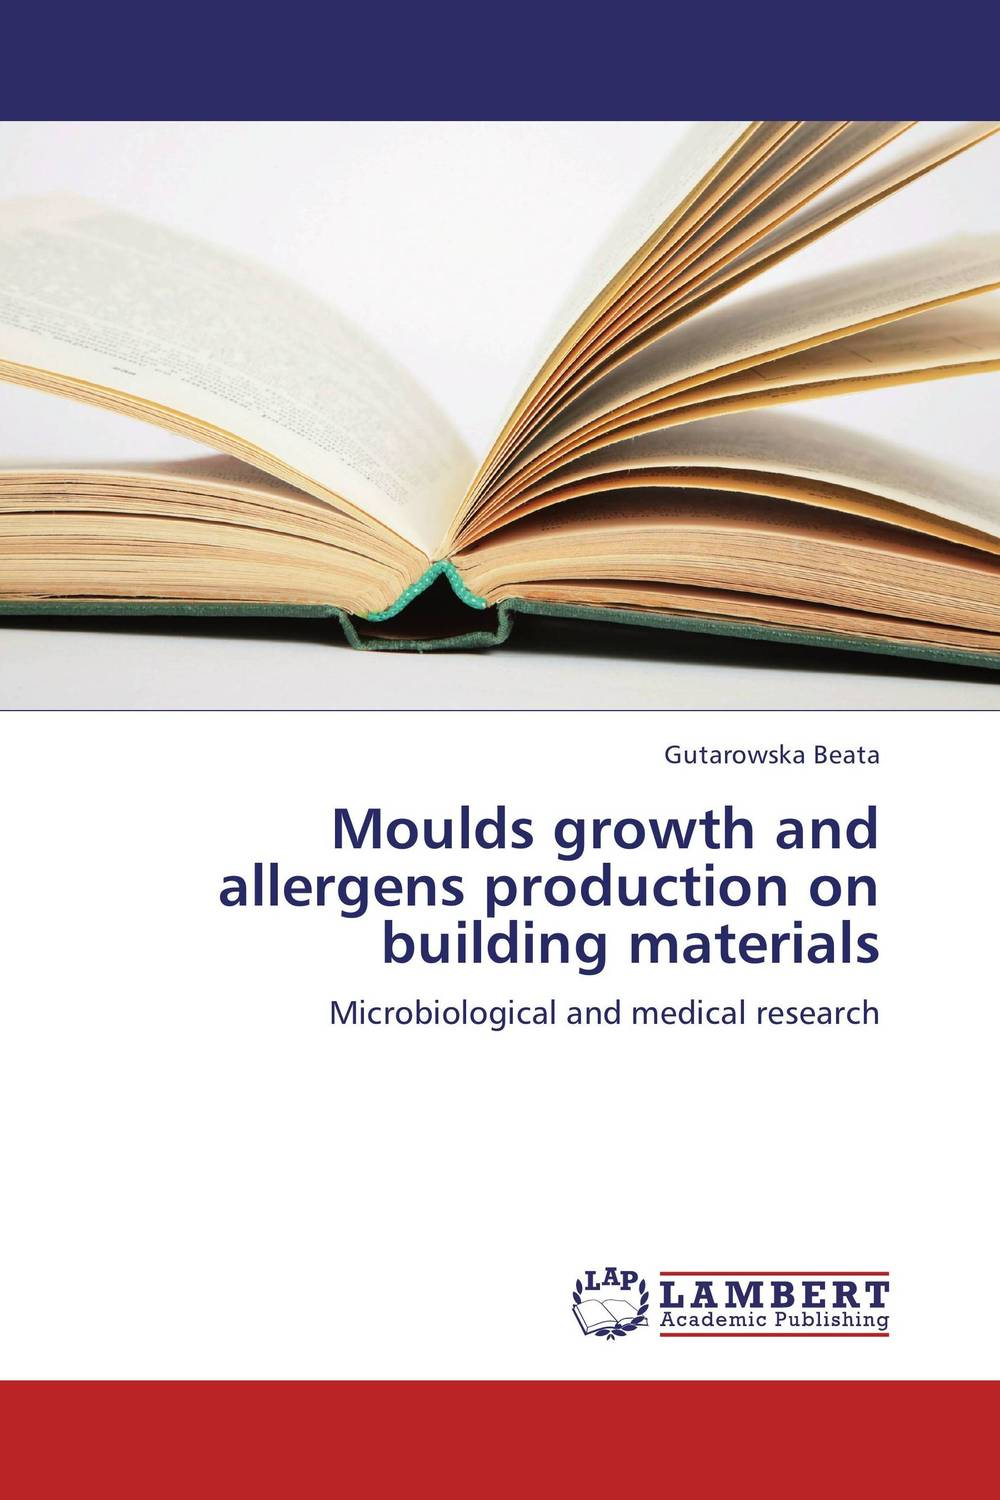 Moulds growth and allergens production on building materials yeasts from nigerian fruits and their growth on formulated media